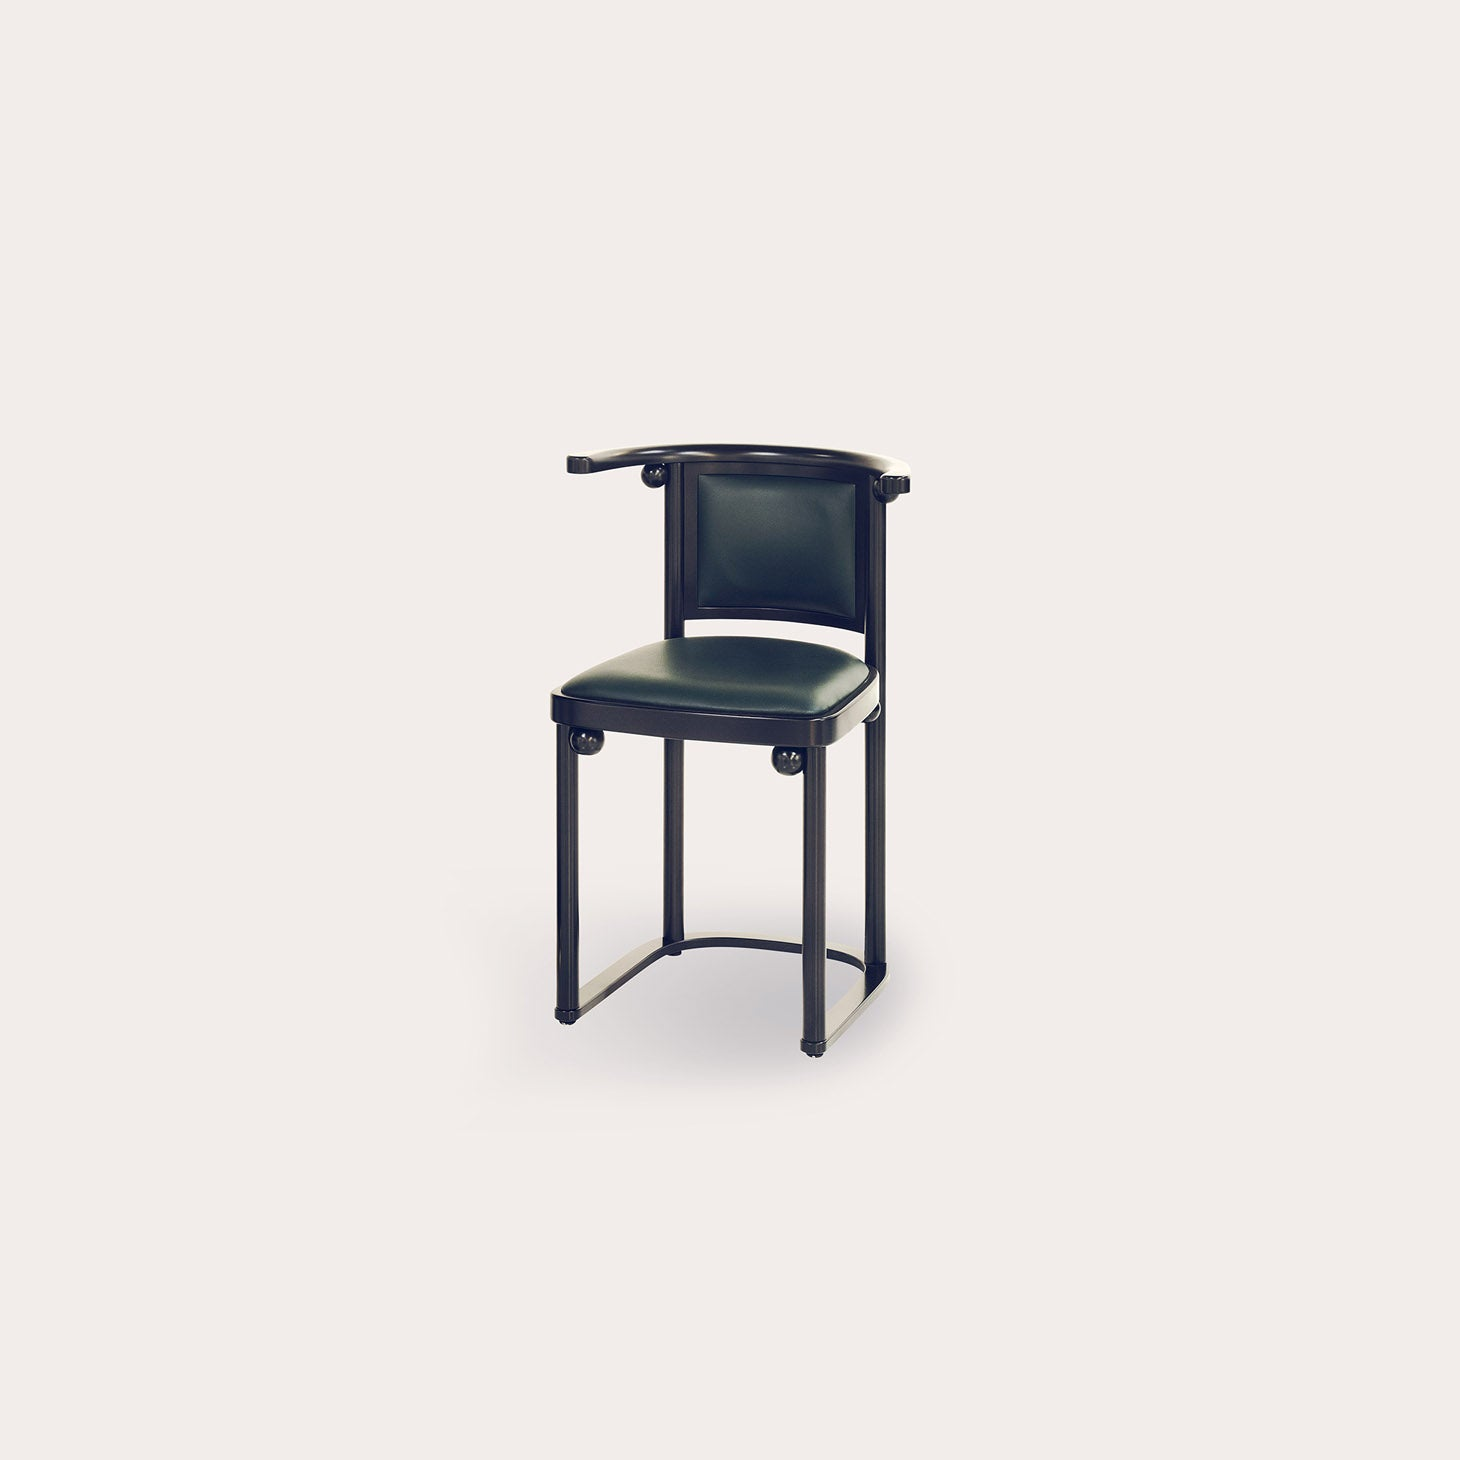 Fledermaus Seating Josef Hoffmann Designer Furniture Sku: 758-120-10041